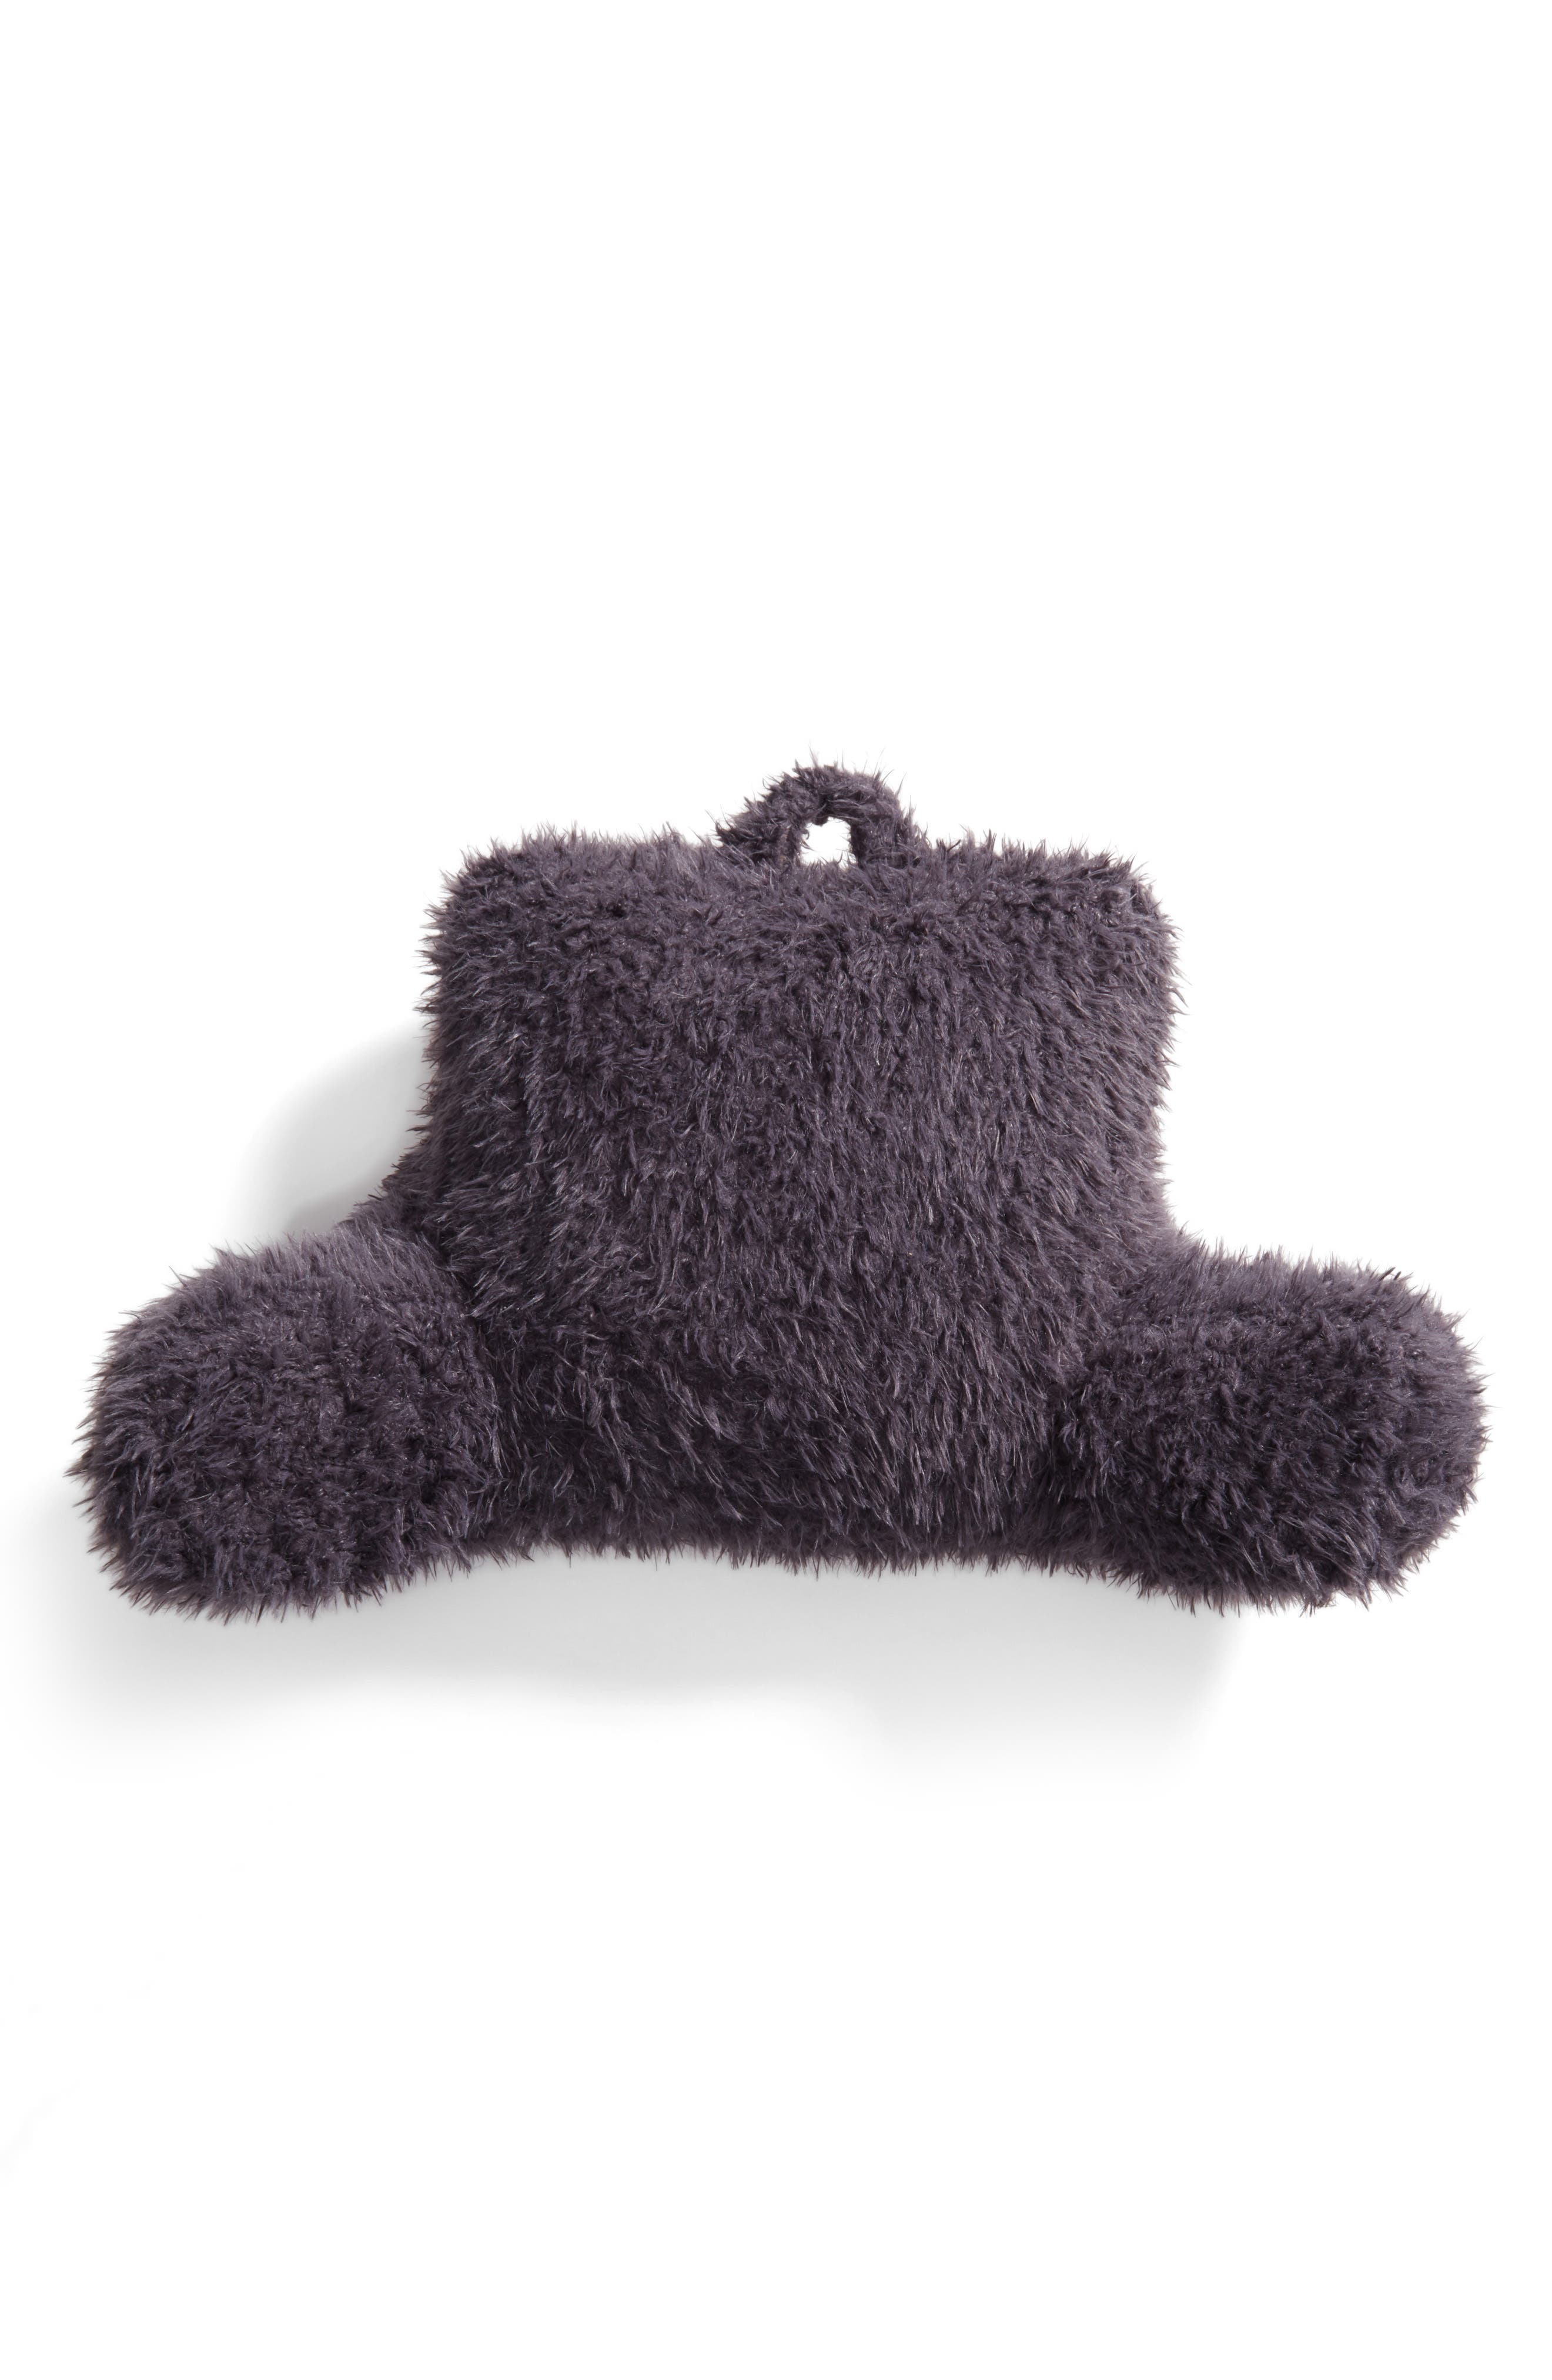 Nordstrom at Home Shaggy Faux Fur Backrest Pillow